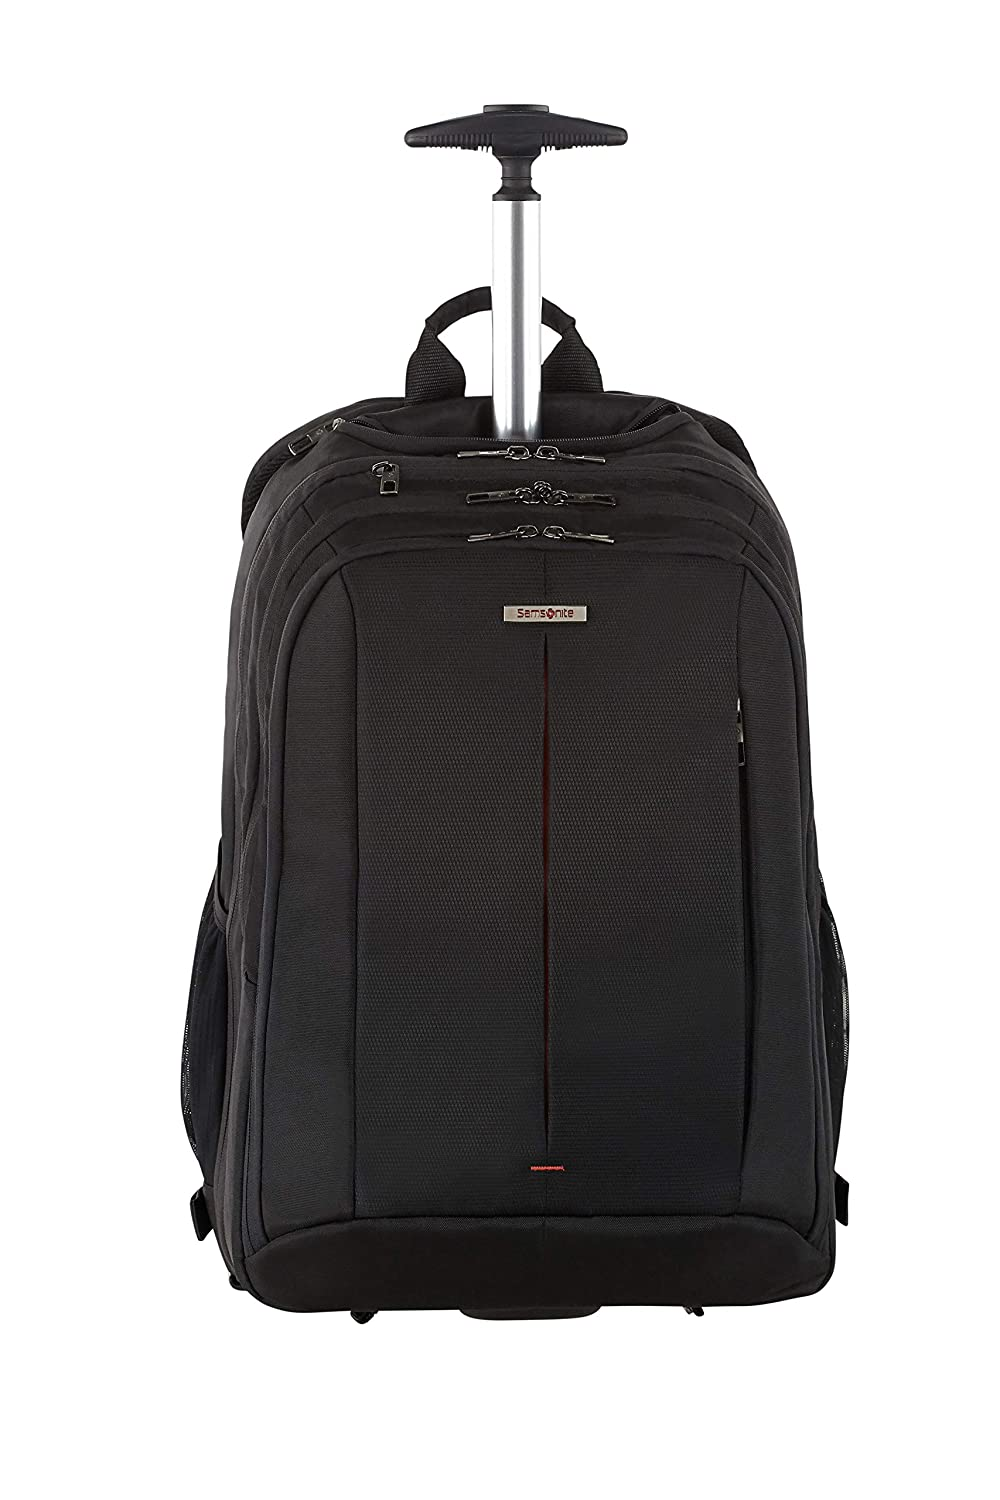 491c0c291213c3 Samsonite Guardit Wheeled Laptop Backpack, 48 cm, 29 litres, Black:  Amazon.co.uk: Luggage